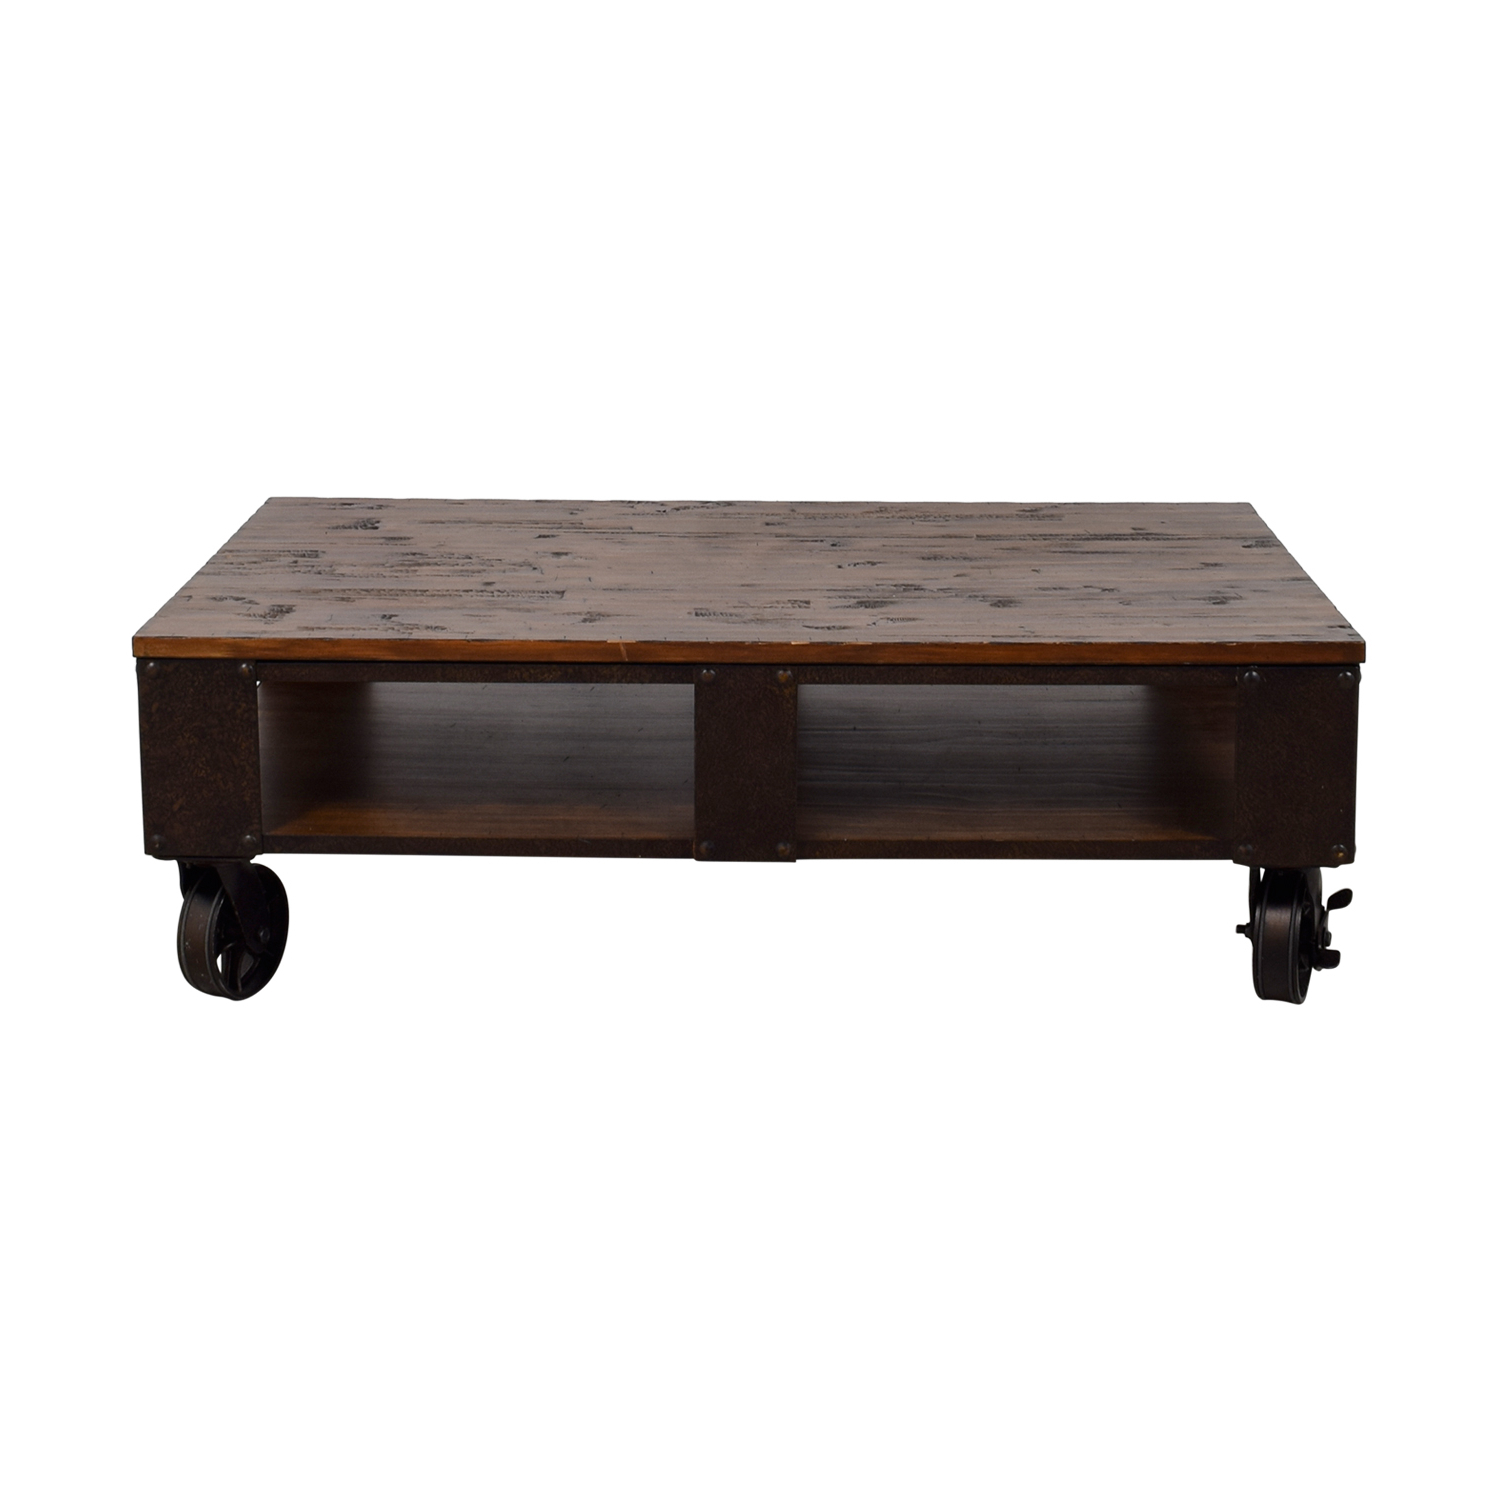 [%59% Off – Magnussen Magnussen T1755 Pinebrook Distressed Natural With Regard To Trendy Natural Pine Coffee Tables|Natural Pine Coffee Tables Throughout Newest 59% Off – Magnussen Magnussen T1755 Pinebrook Distressed Natural|Current Natural Pine Coffee Tables Intended For 59% Off – Magnussen Magnussen T1755 Pinebrook Distressed Natural|Famous 59% Off – Magnussen Magnussen T1755 Pinebrook Distressed Natural Inside Natural Pine Coffee Tables%] (View 16 of 20)